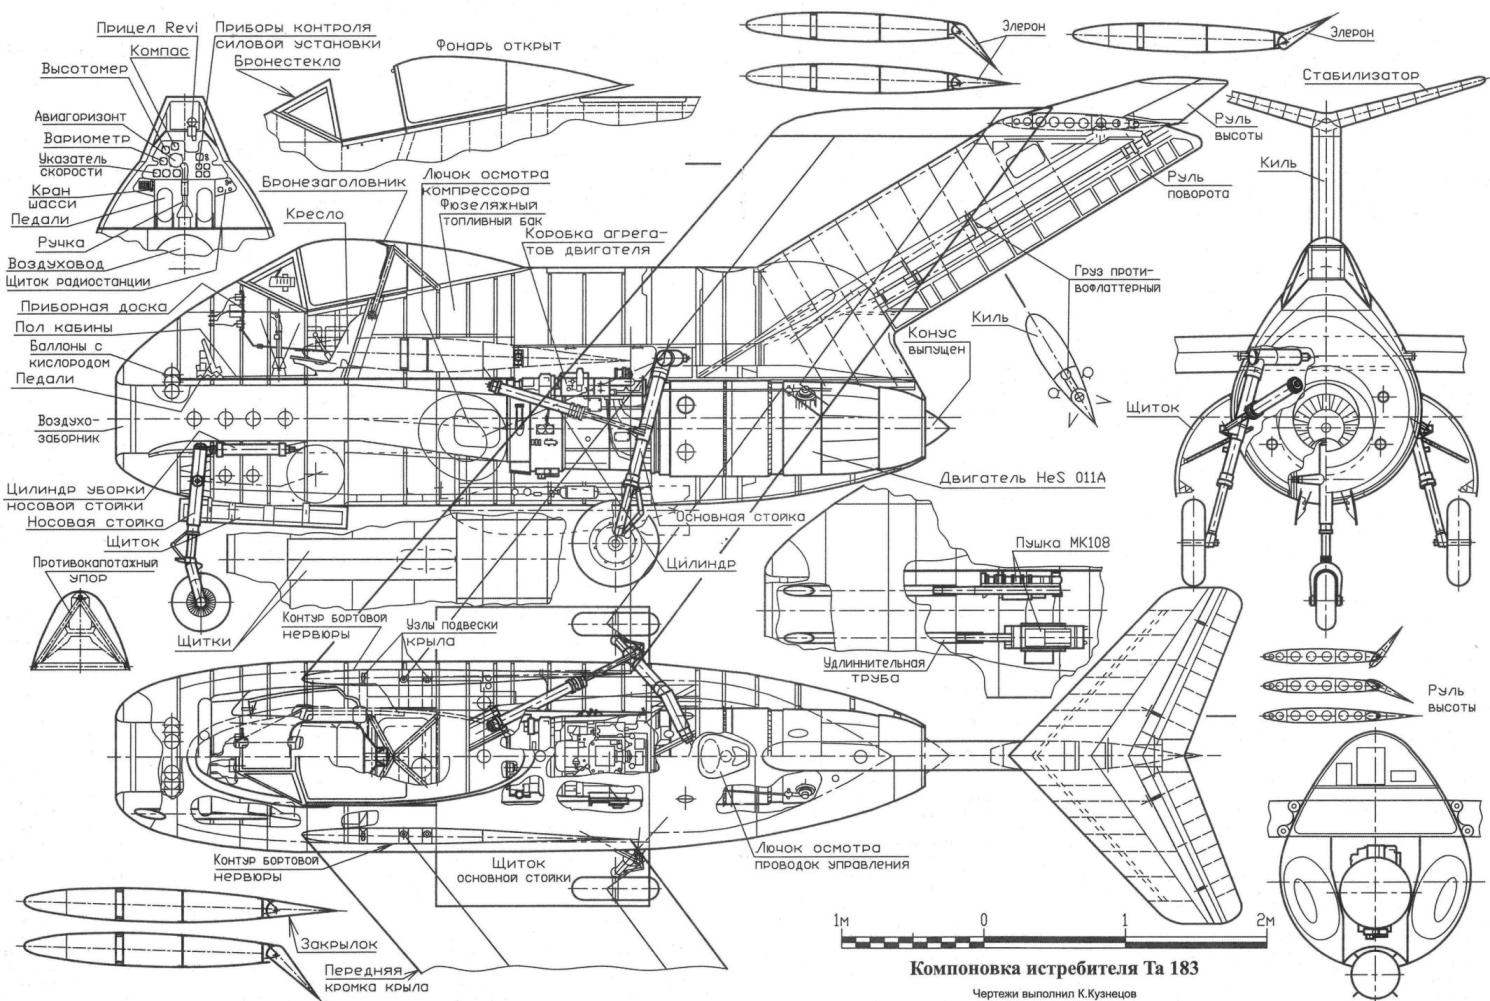 The layout of the TA 183 fighter